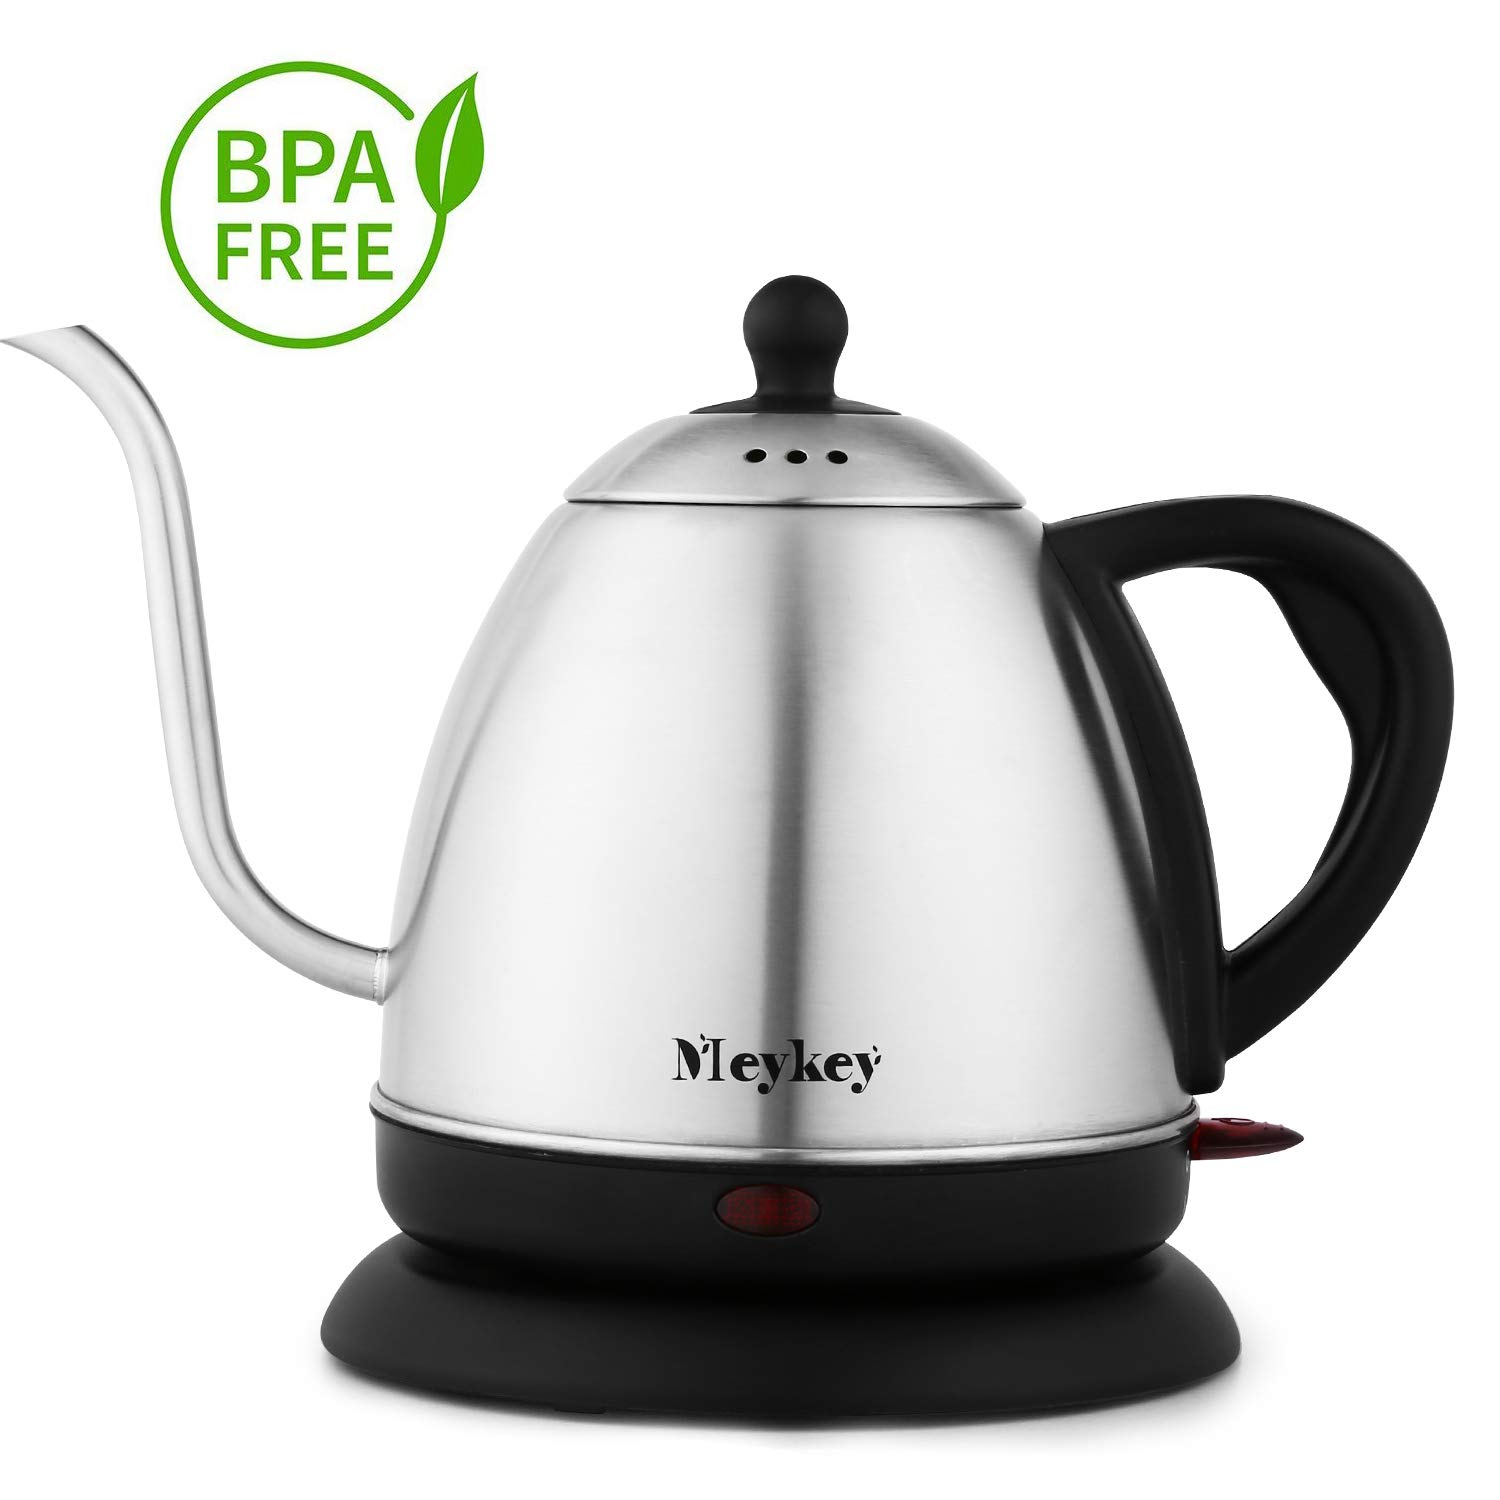 MeyKey Electric Kettle, Hot Water Kettle 1.0 Liter Stainless Steel Gooseneck Tea Kettle 1000W with Auto Shut-off and Boil Dry Protection